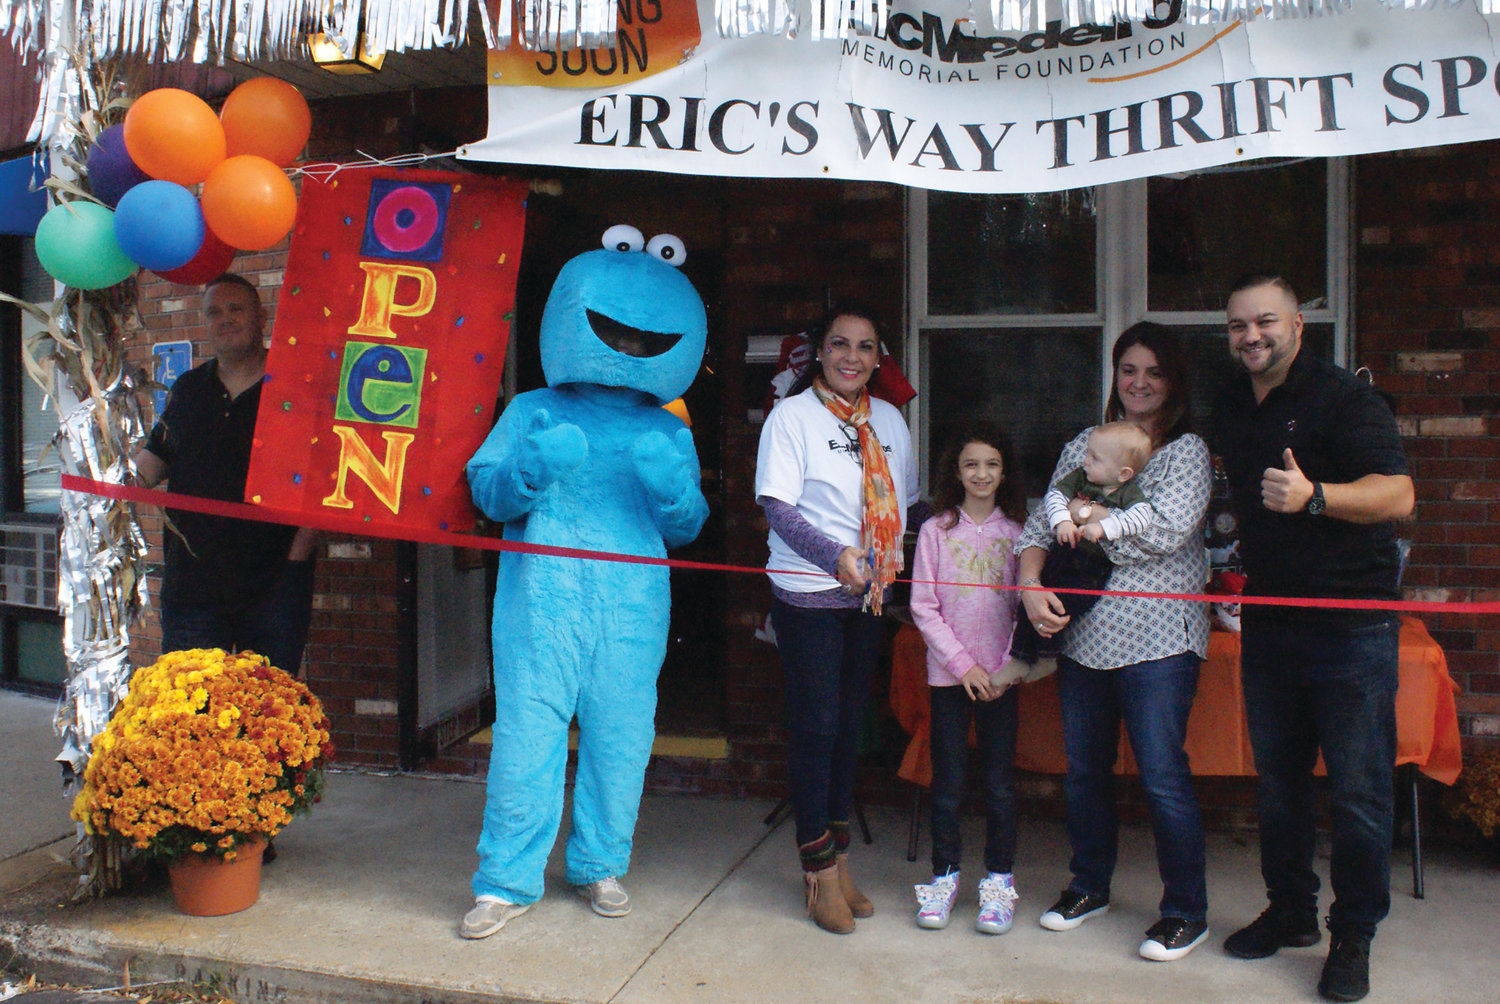 NEW BUSINESS: Eric's Way Thrift Spot has opened at 471 Atwood Ave. and celebrated its grand opening on Oct. 26. The store sells new and gently used items to benefit the Eric Medeiros Memorial Foundation. Pictured at the ribbon-cutting ceremony are, from left, Matt Adams, Cookie Monster (Philip Page), owner Anna Casador-Saccoccio, Abby Bober, Benjamin Adams, Jeannette Saccoccio and Ward 4 City Councilman Ed Brady.